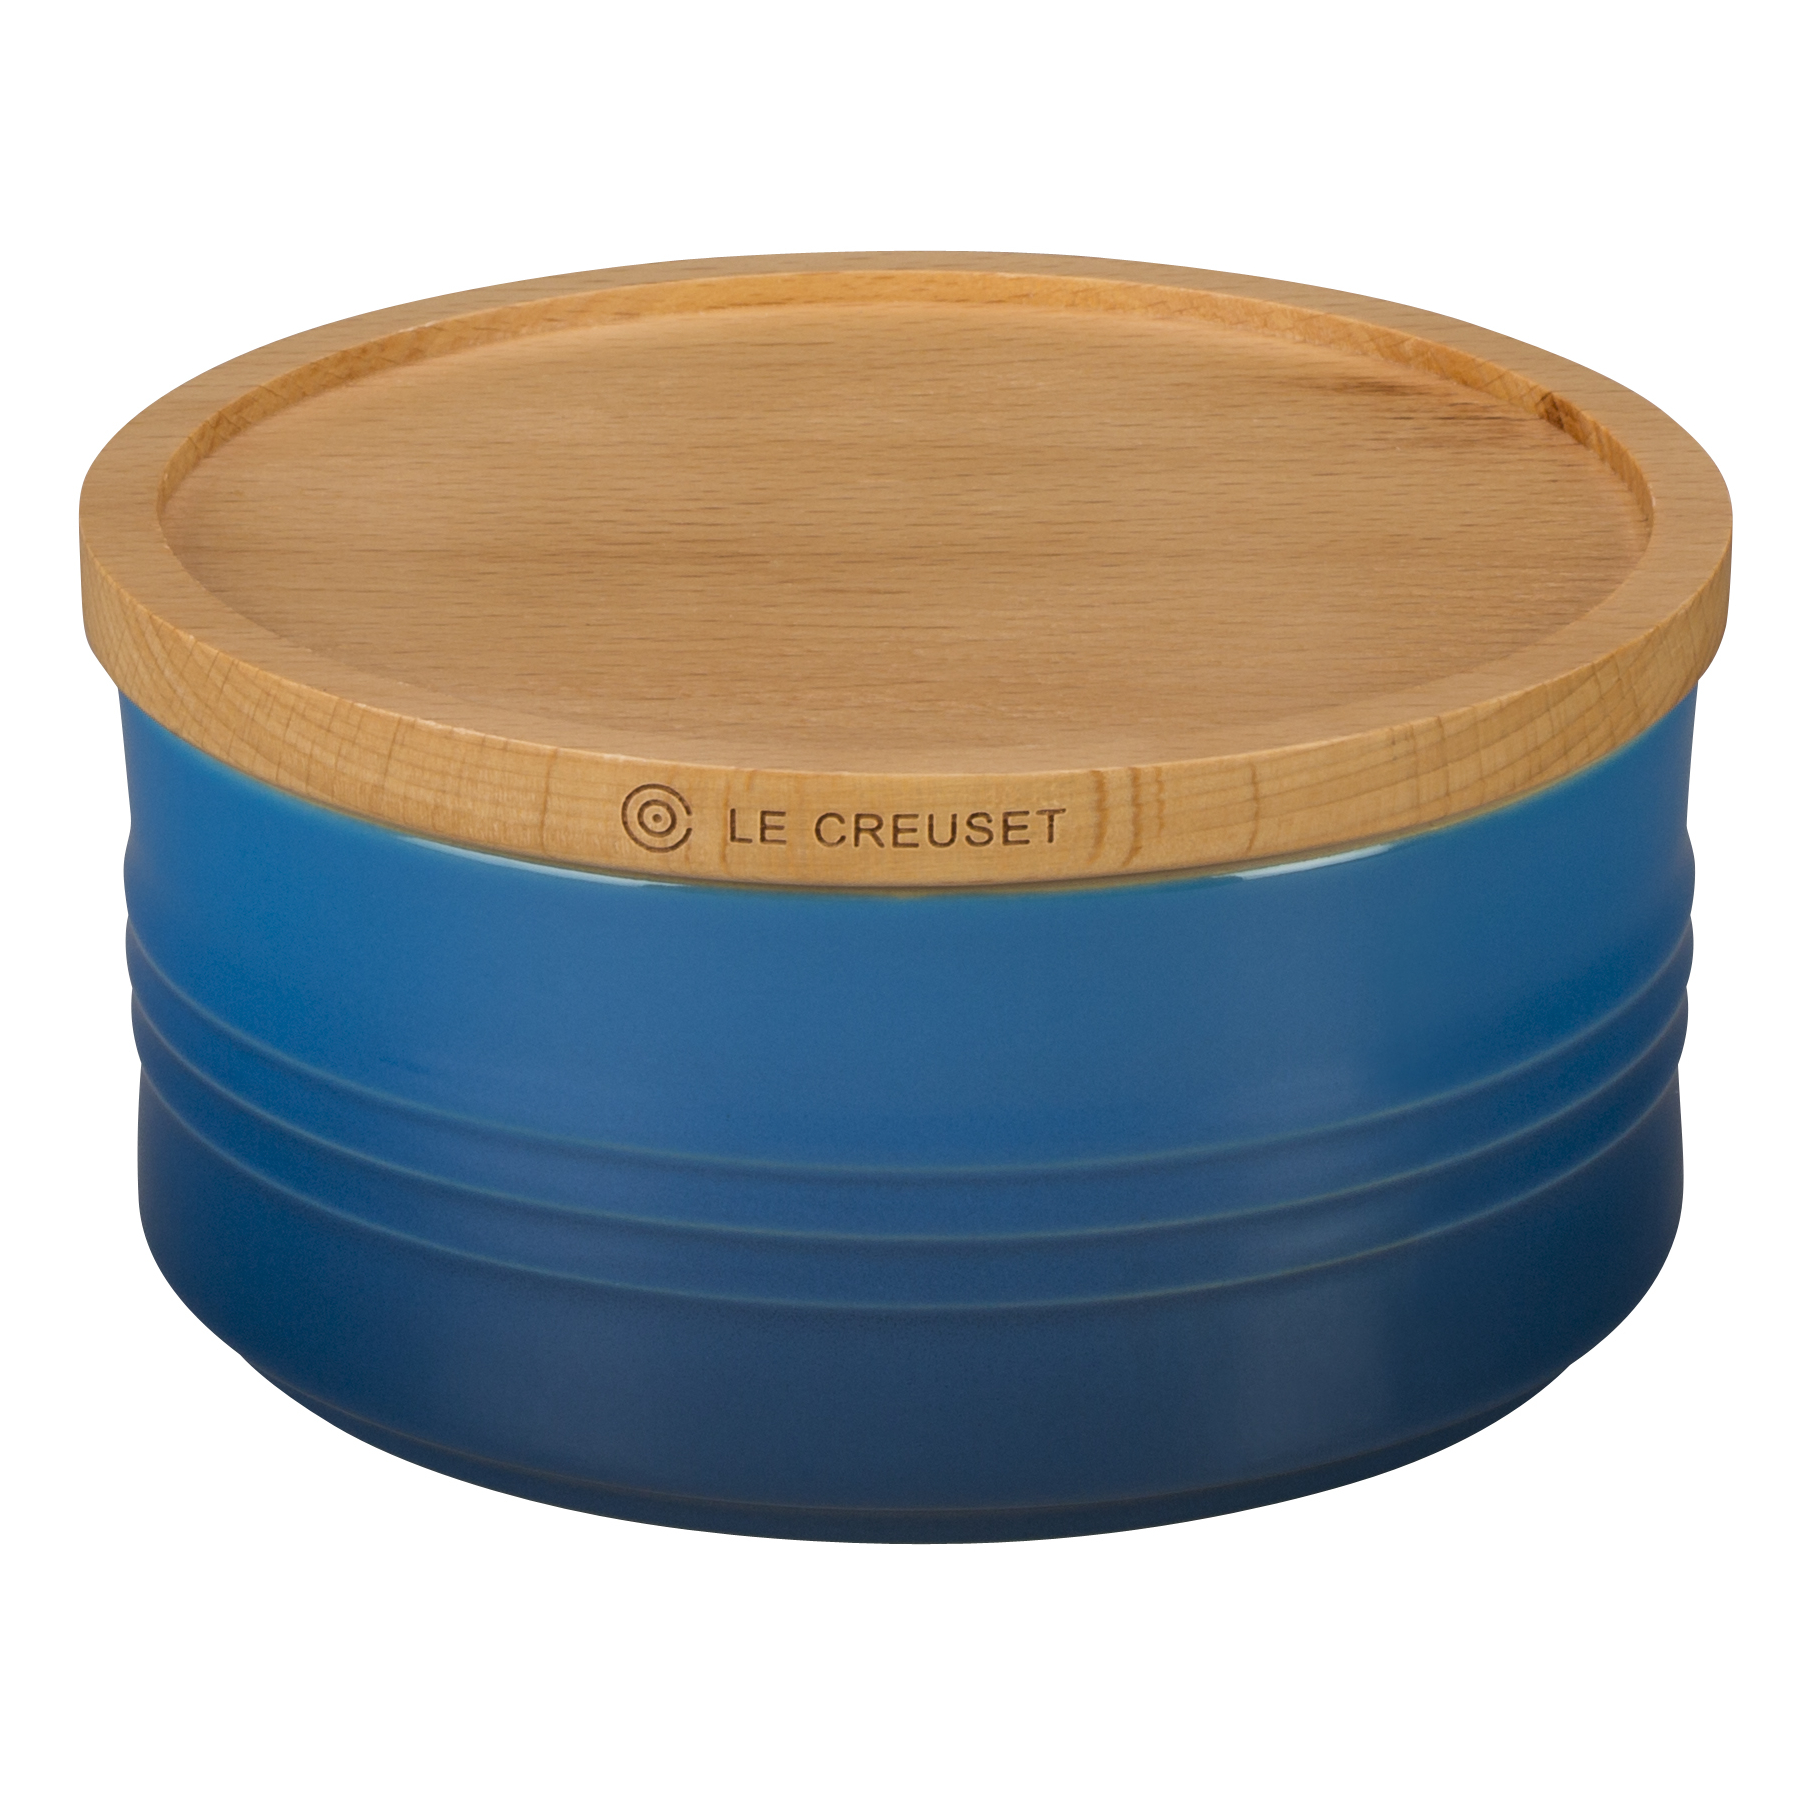 Le Creuset Marseille Stoneware 23 Ounce Canister with Wooden Lid